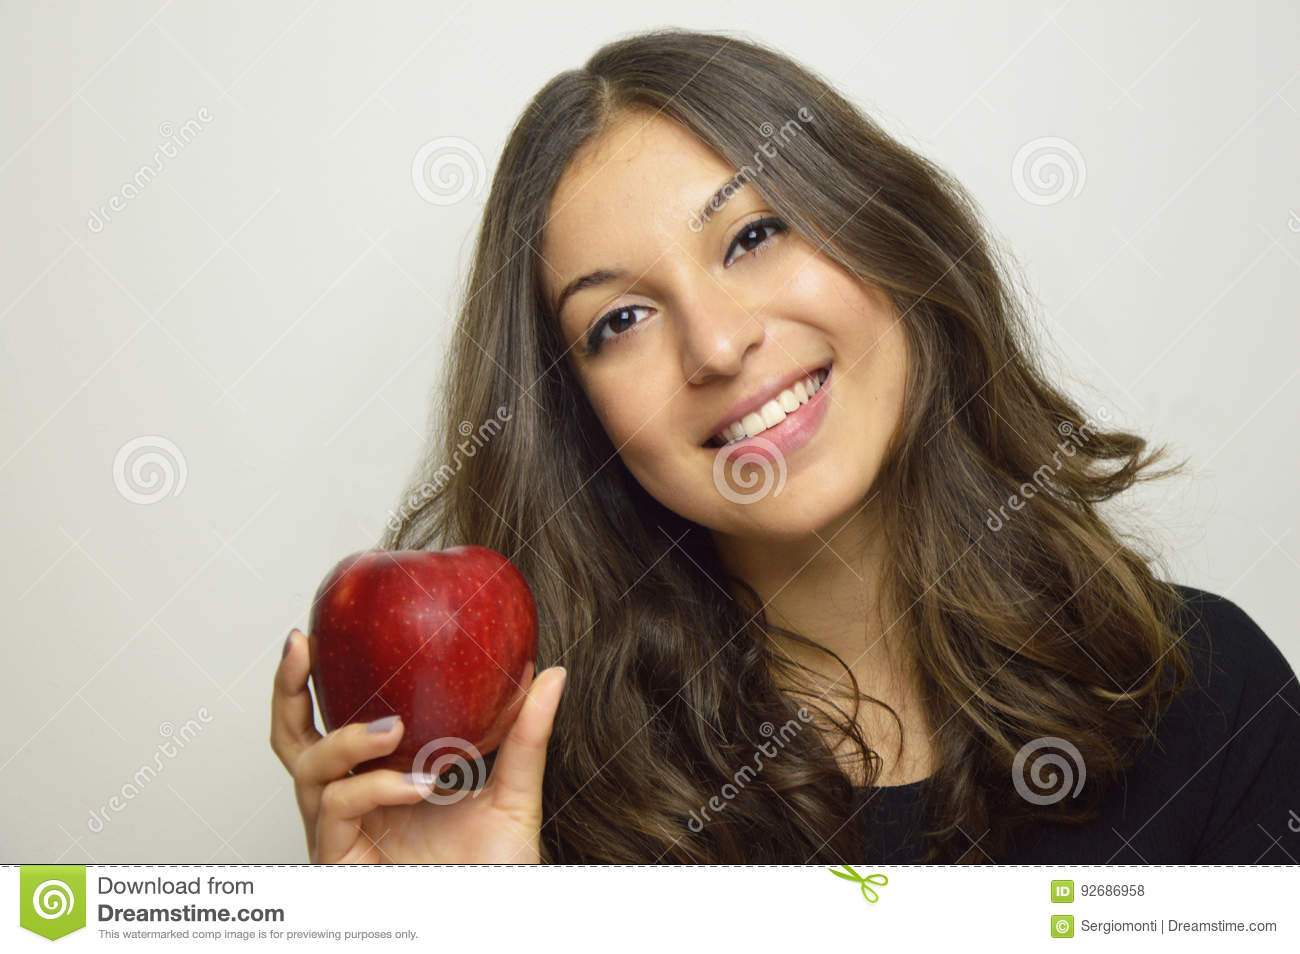 Portrait of attractive girl smiling with red apple in her hand healthy fruit